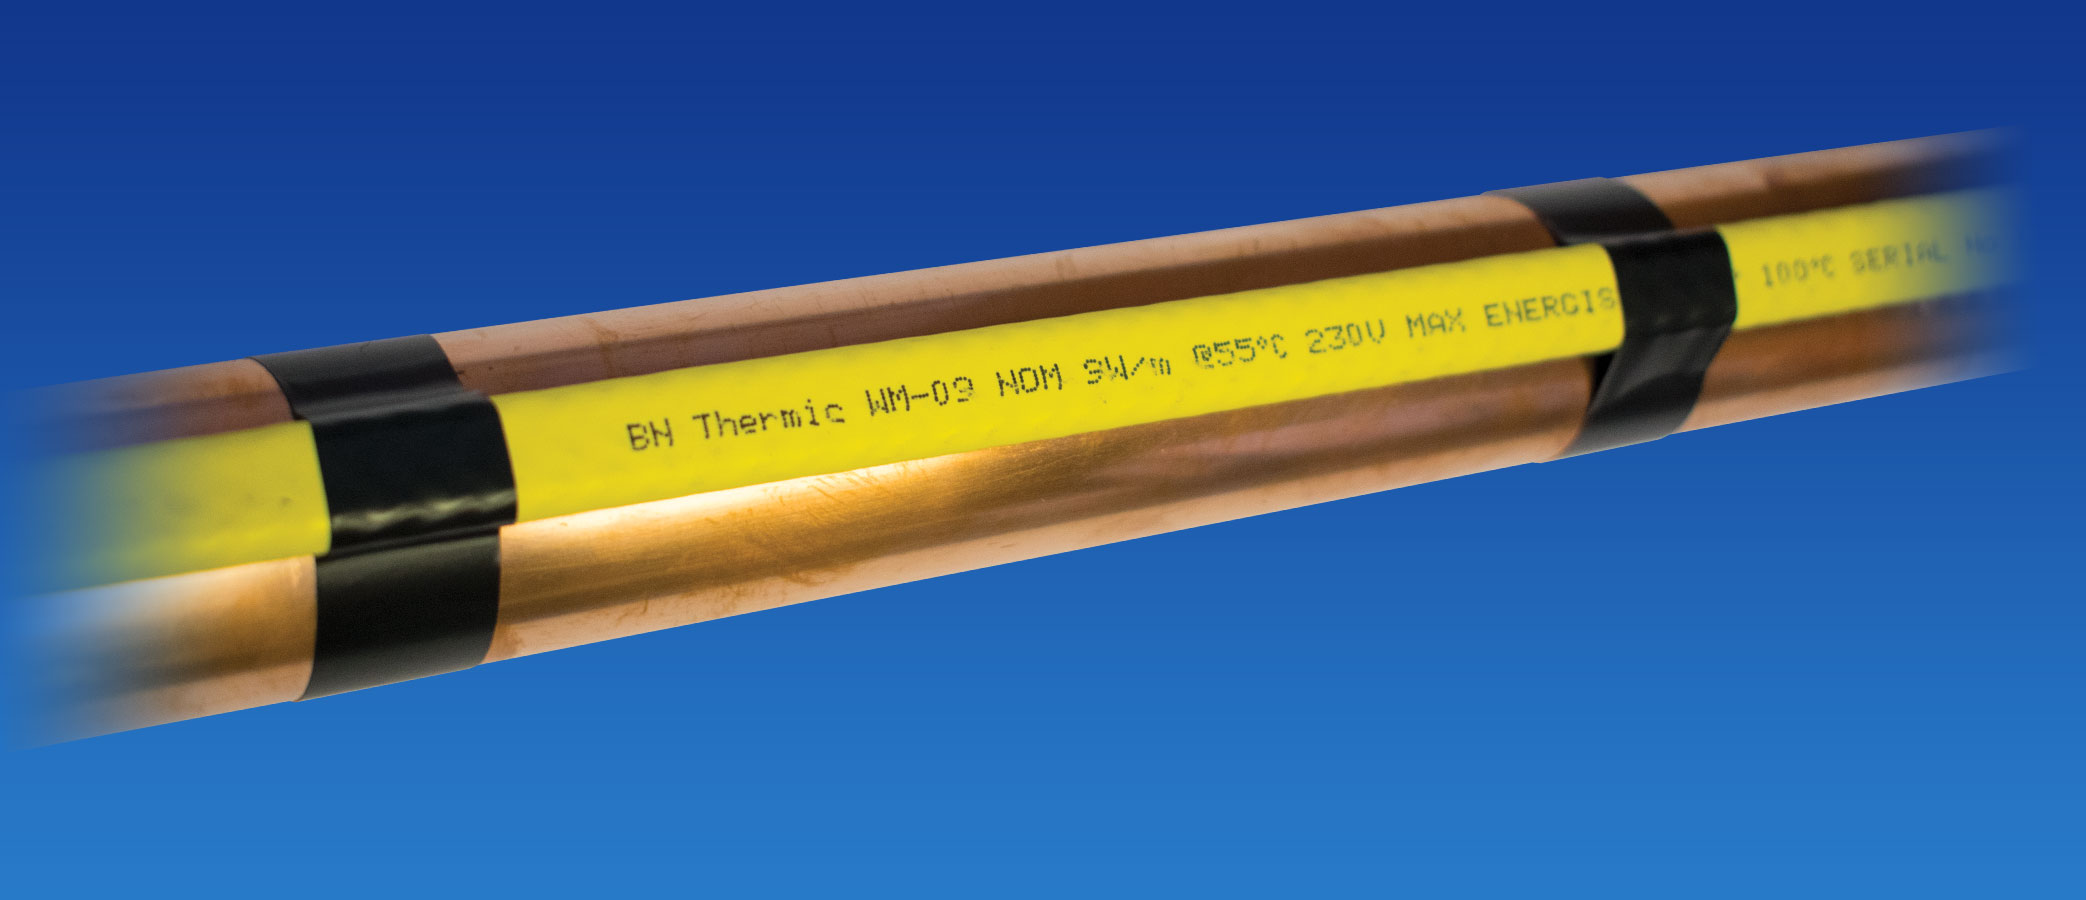 hpbnr heating cables